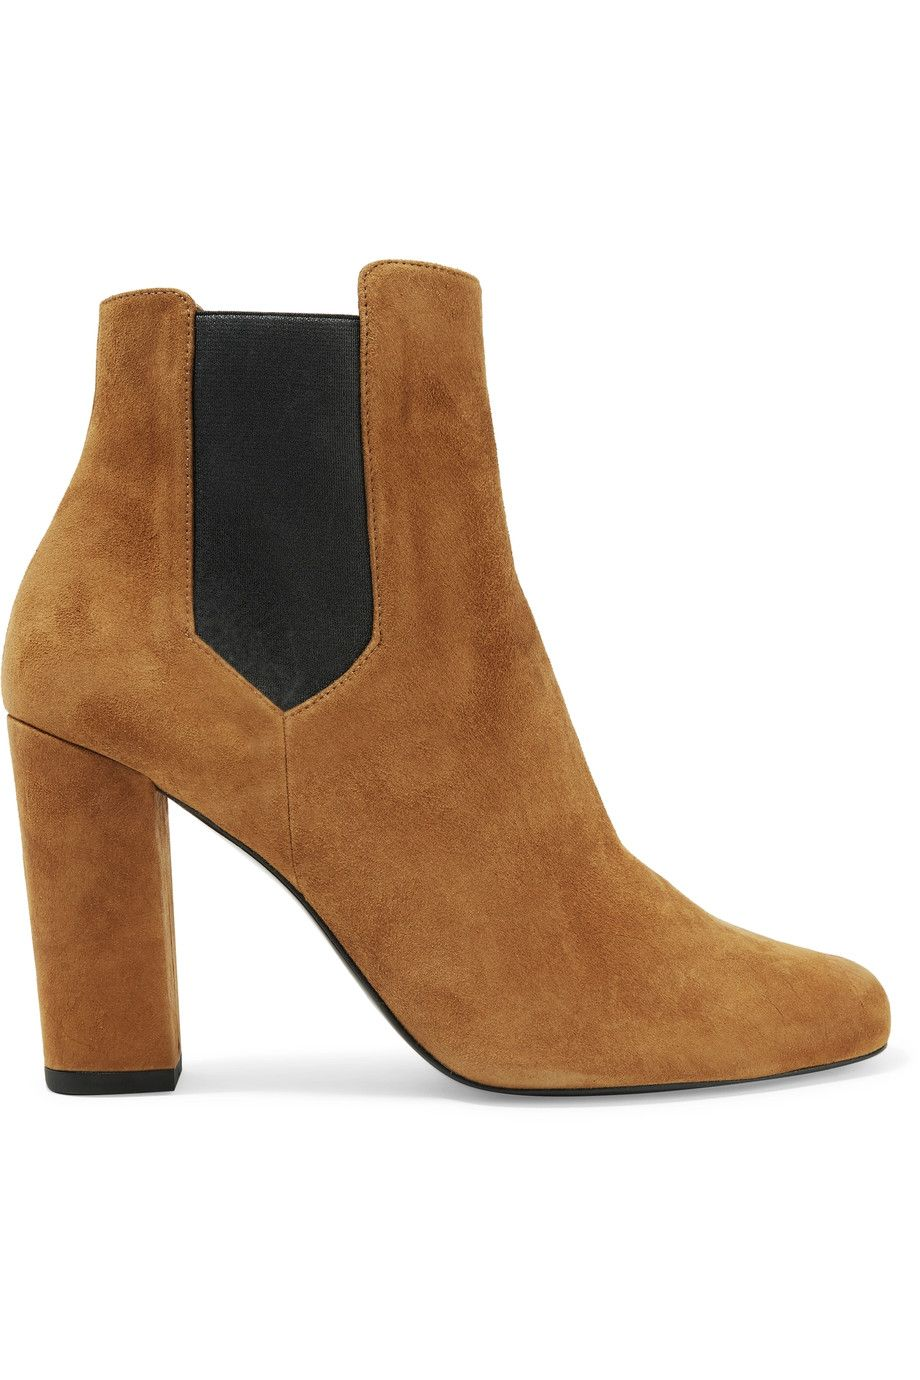 Iro Shearling-Trimmed Ankle Boots buy cheap outlet cheap sale the cheapest gpCX9